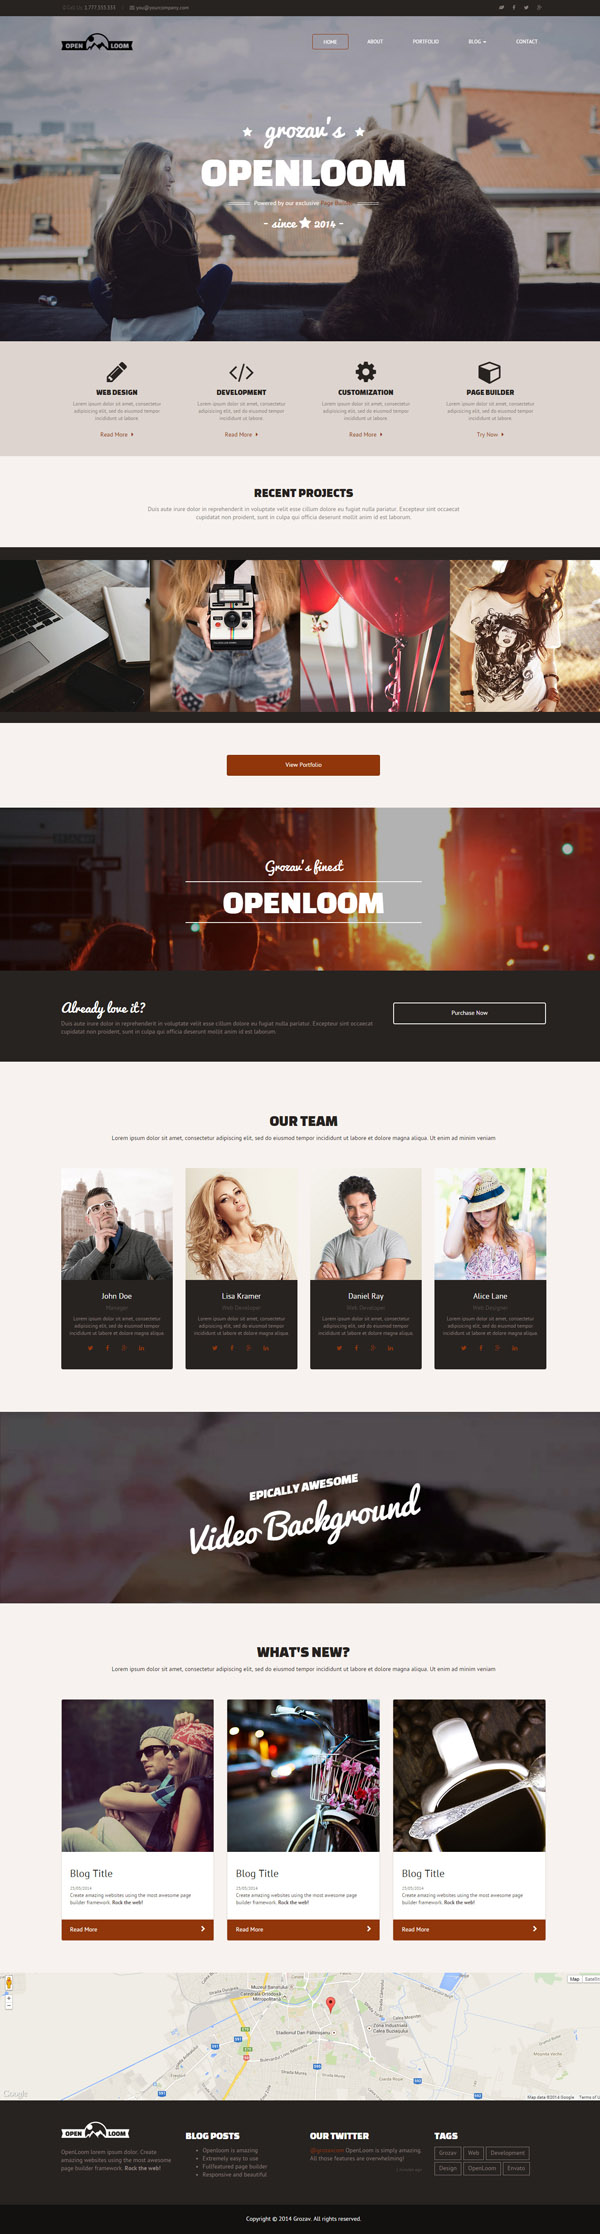 OpenLoom - MultiPurpose Template with Page Builder